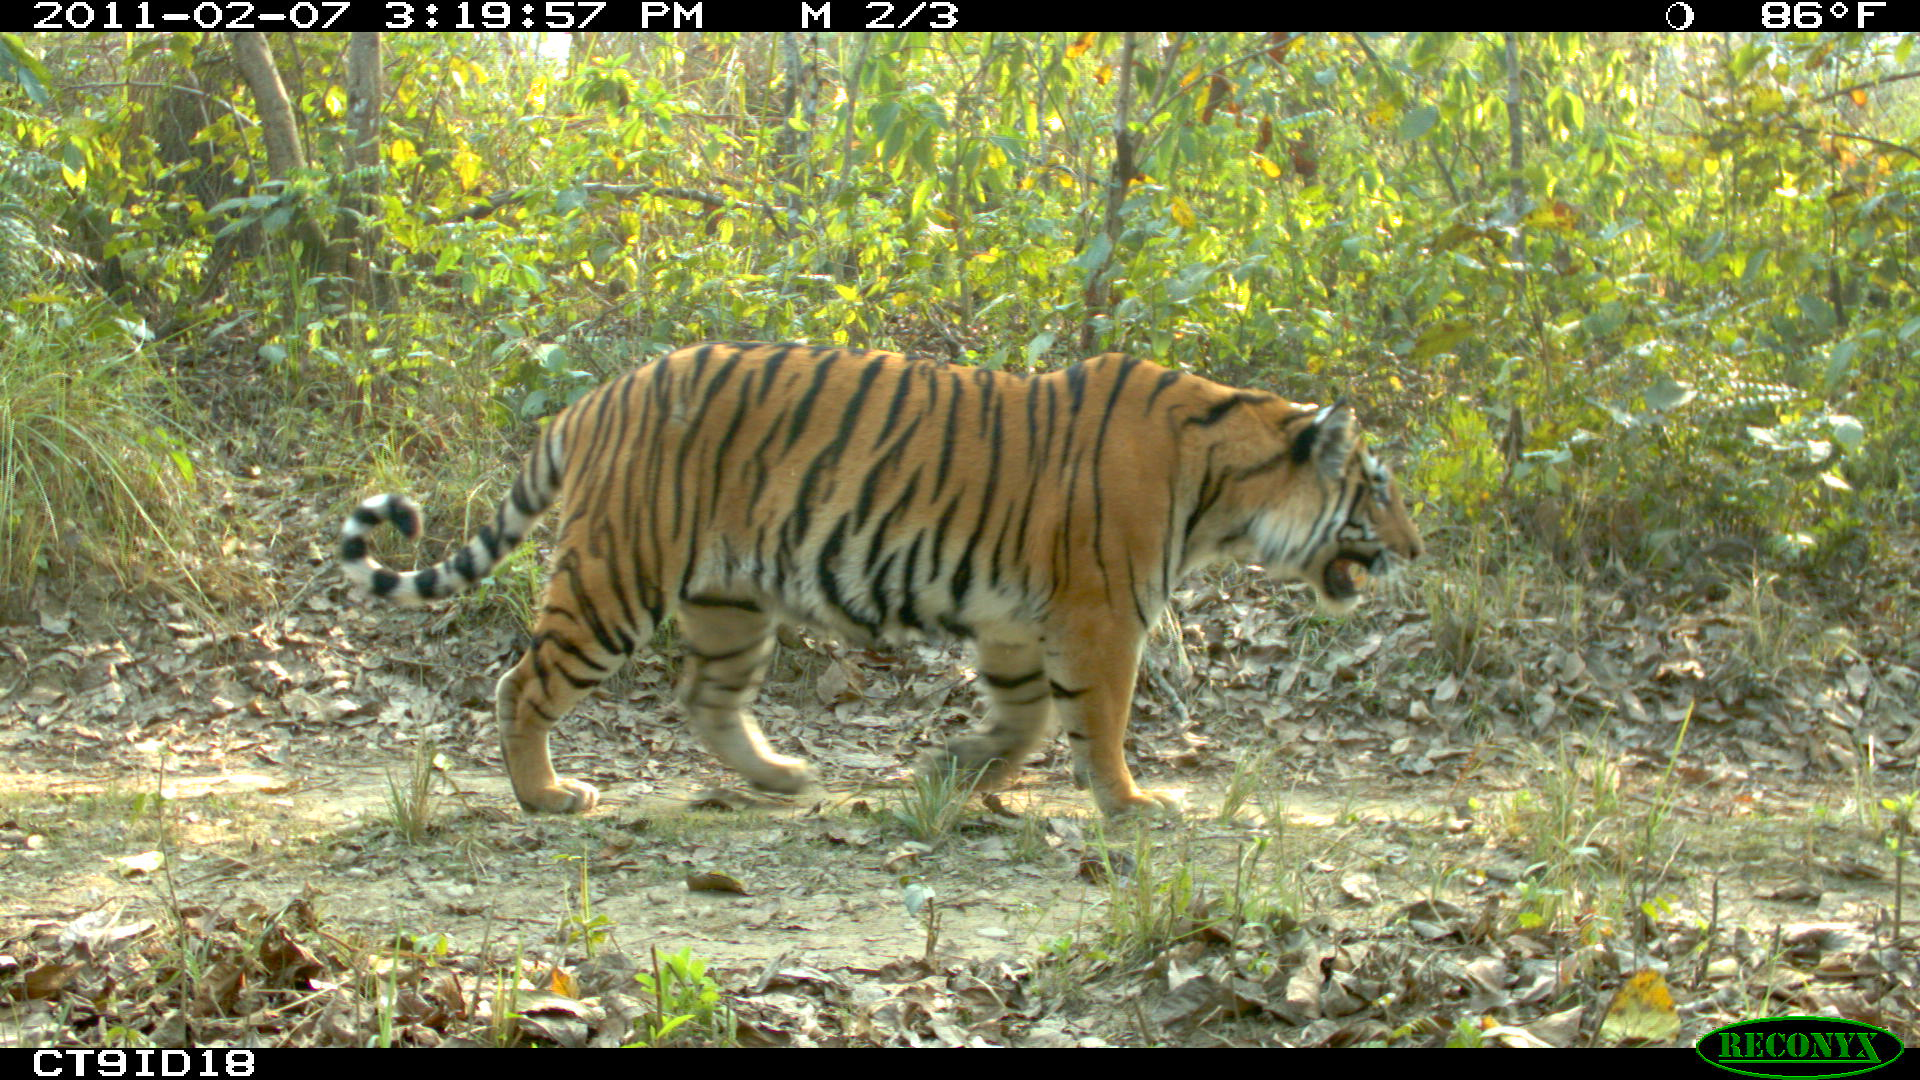 An adult tiger walking along a dirt road in Nepal's Chitwan National Park. Nepal's East-West Highway, currently mostly a single lane in each direction, runs adjacent to the park. There are plans to add an additional lane in each direction and to build a railway nearby, which could impact tiger habitat connectivity. Image credit: Neil Carter